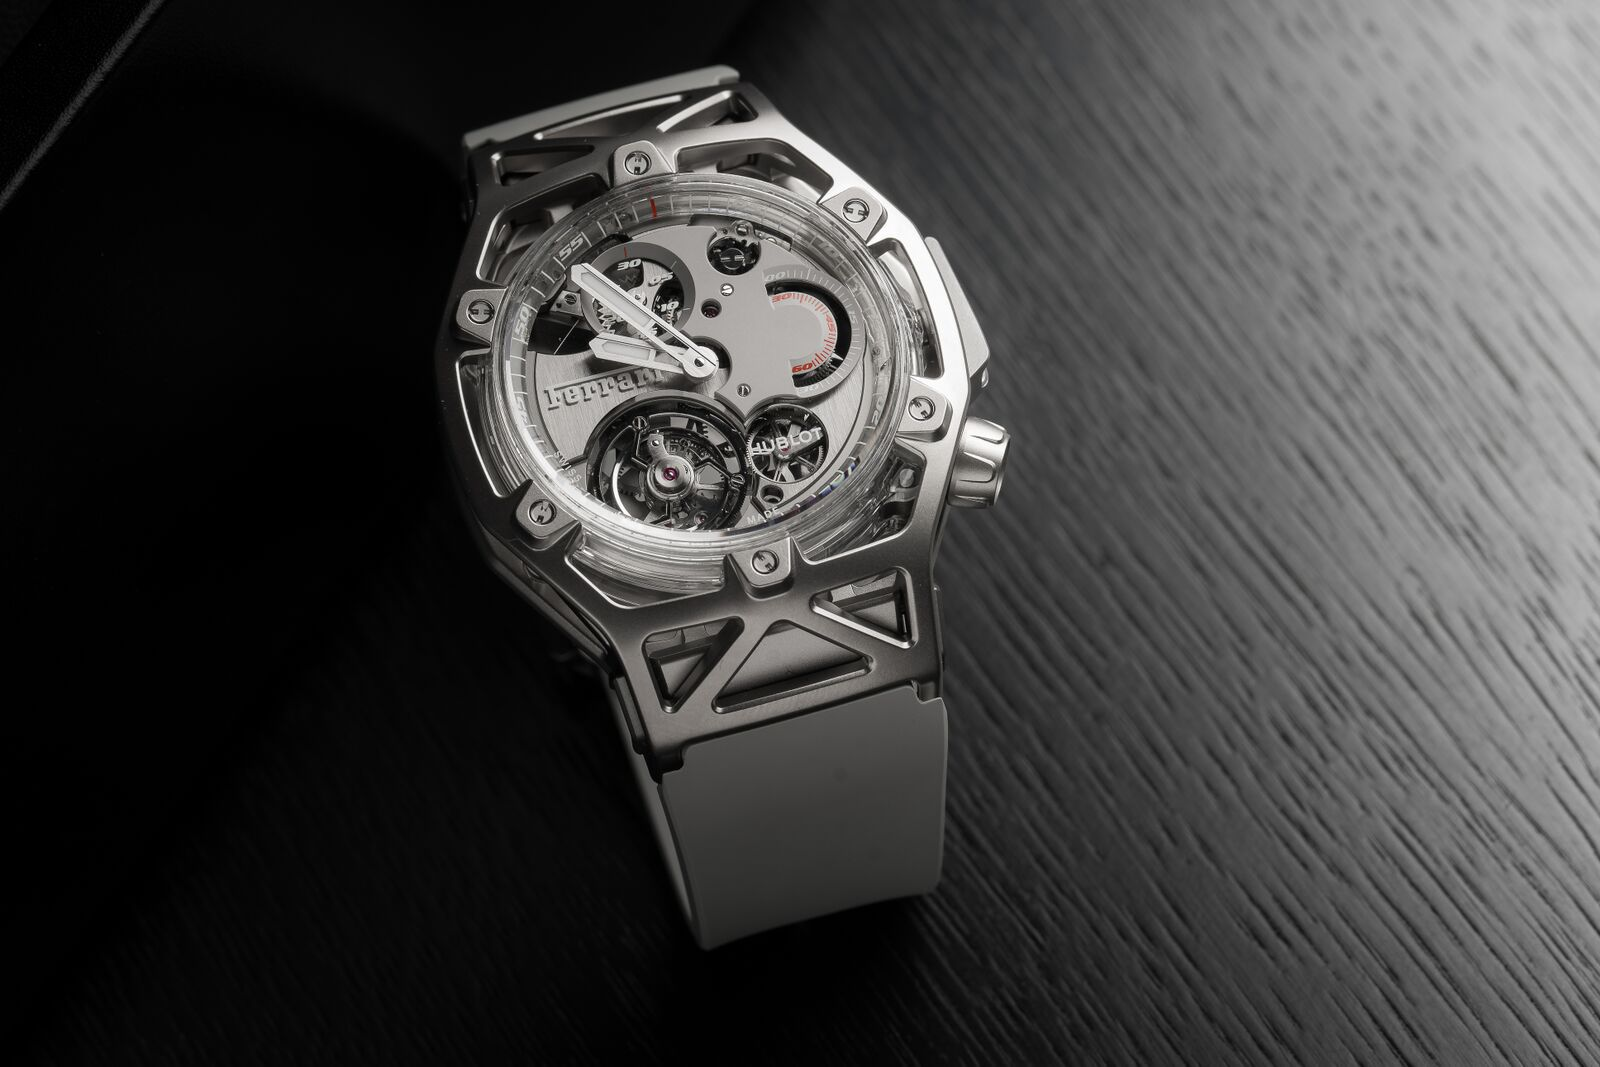 Hublot-Techframe-Ferrari-Tourbillon-Chronograph-1.jpeg